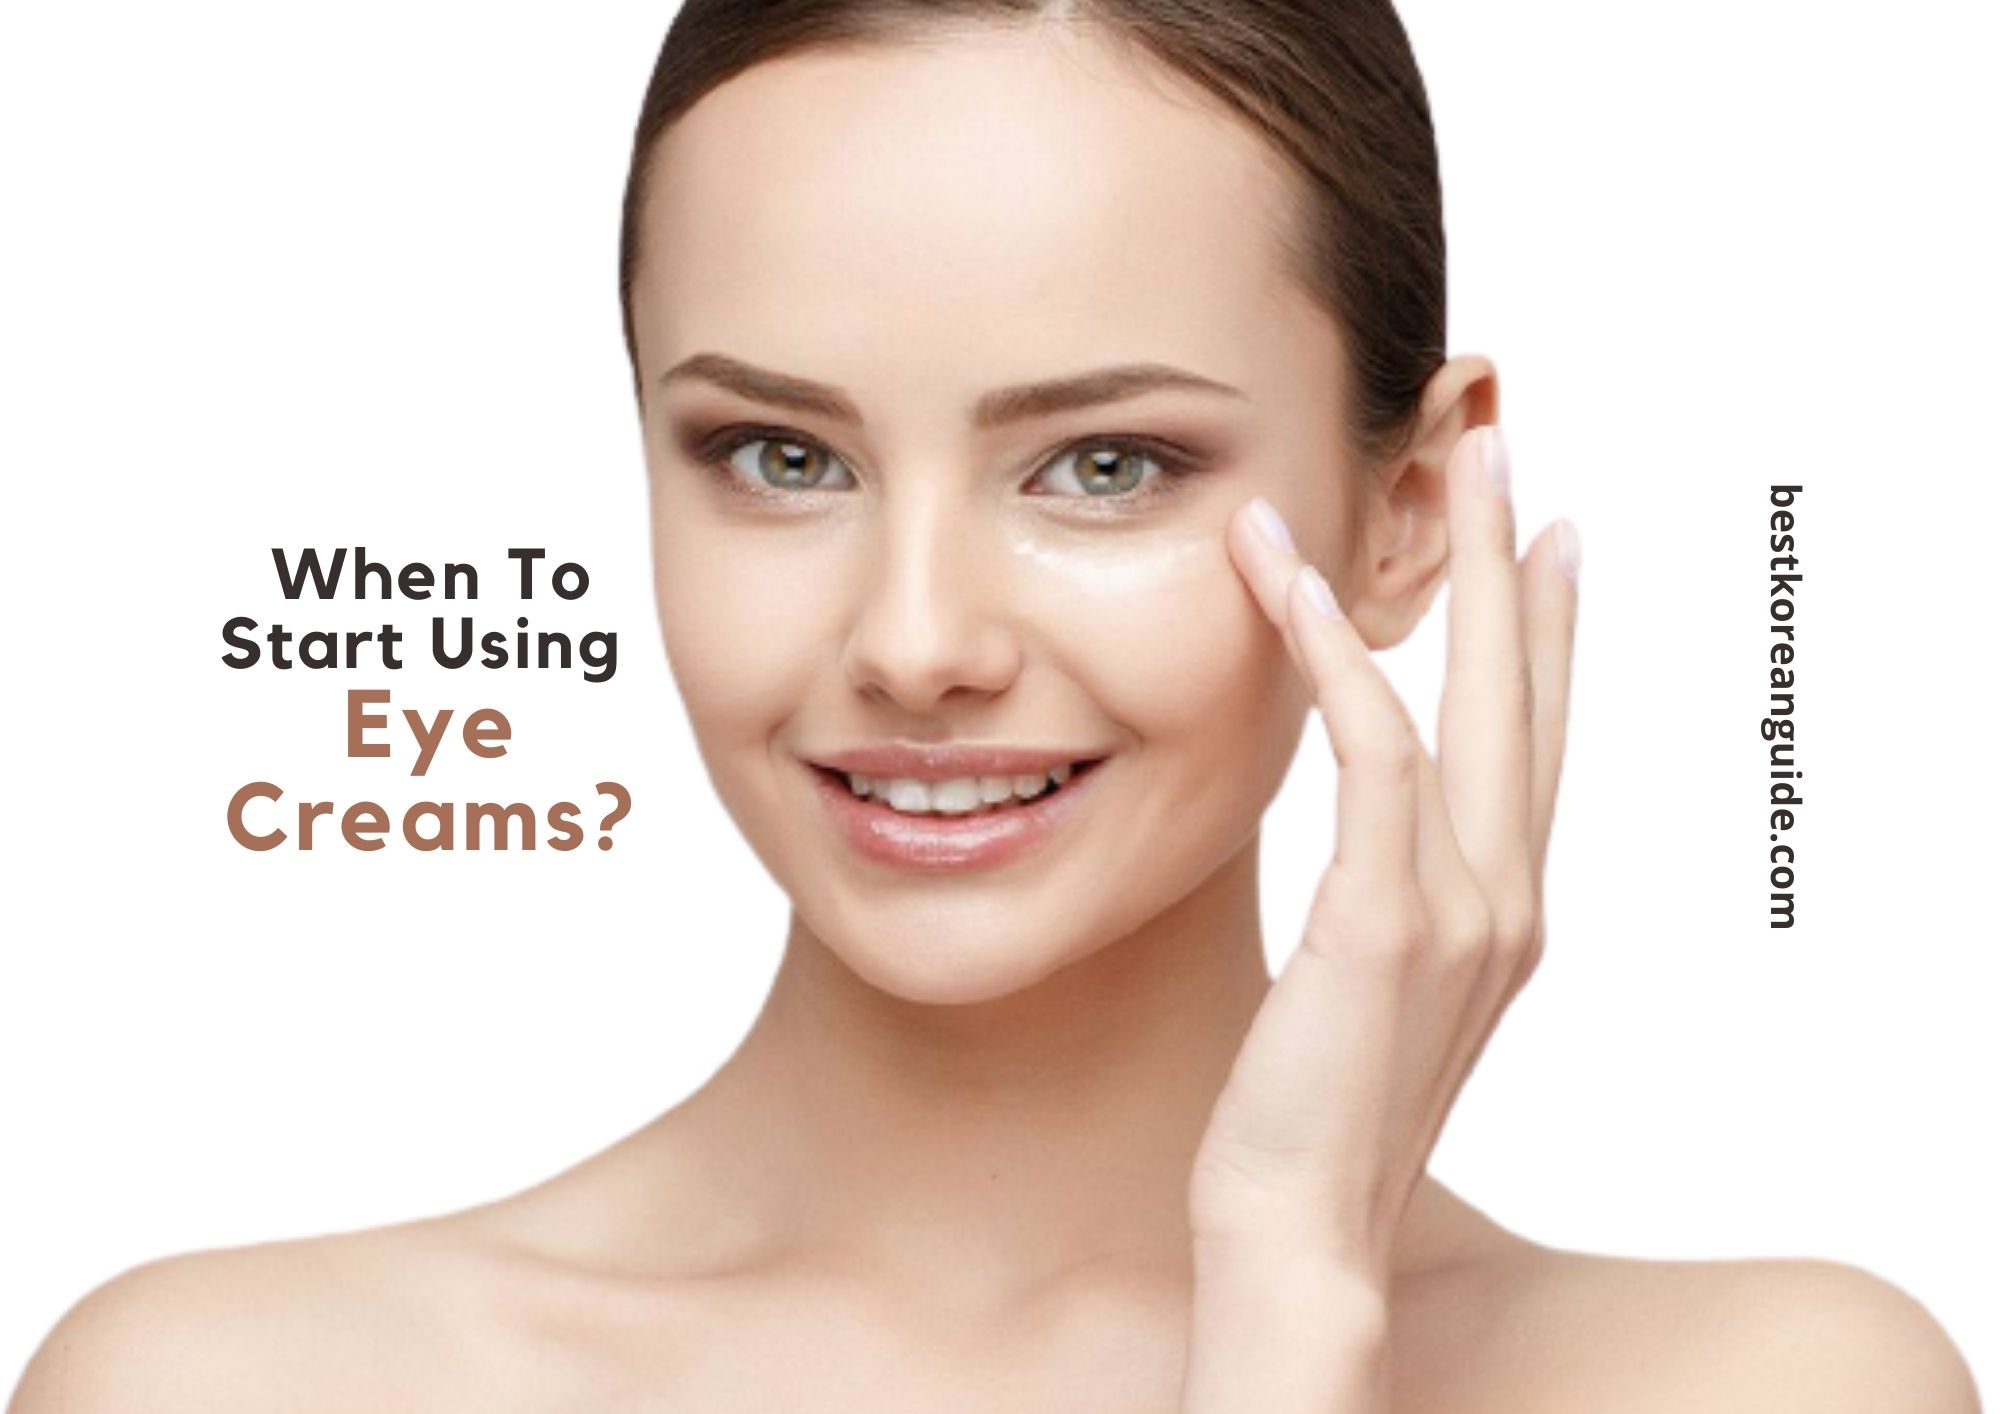 When To Start Using Eye Creams